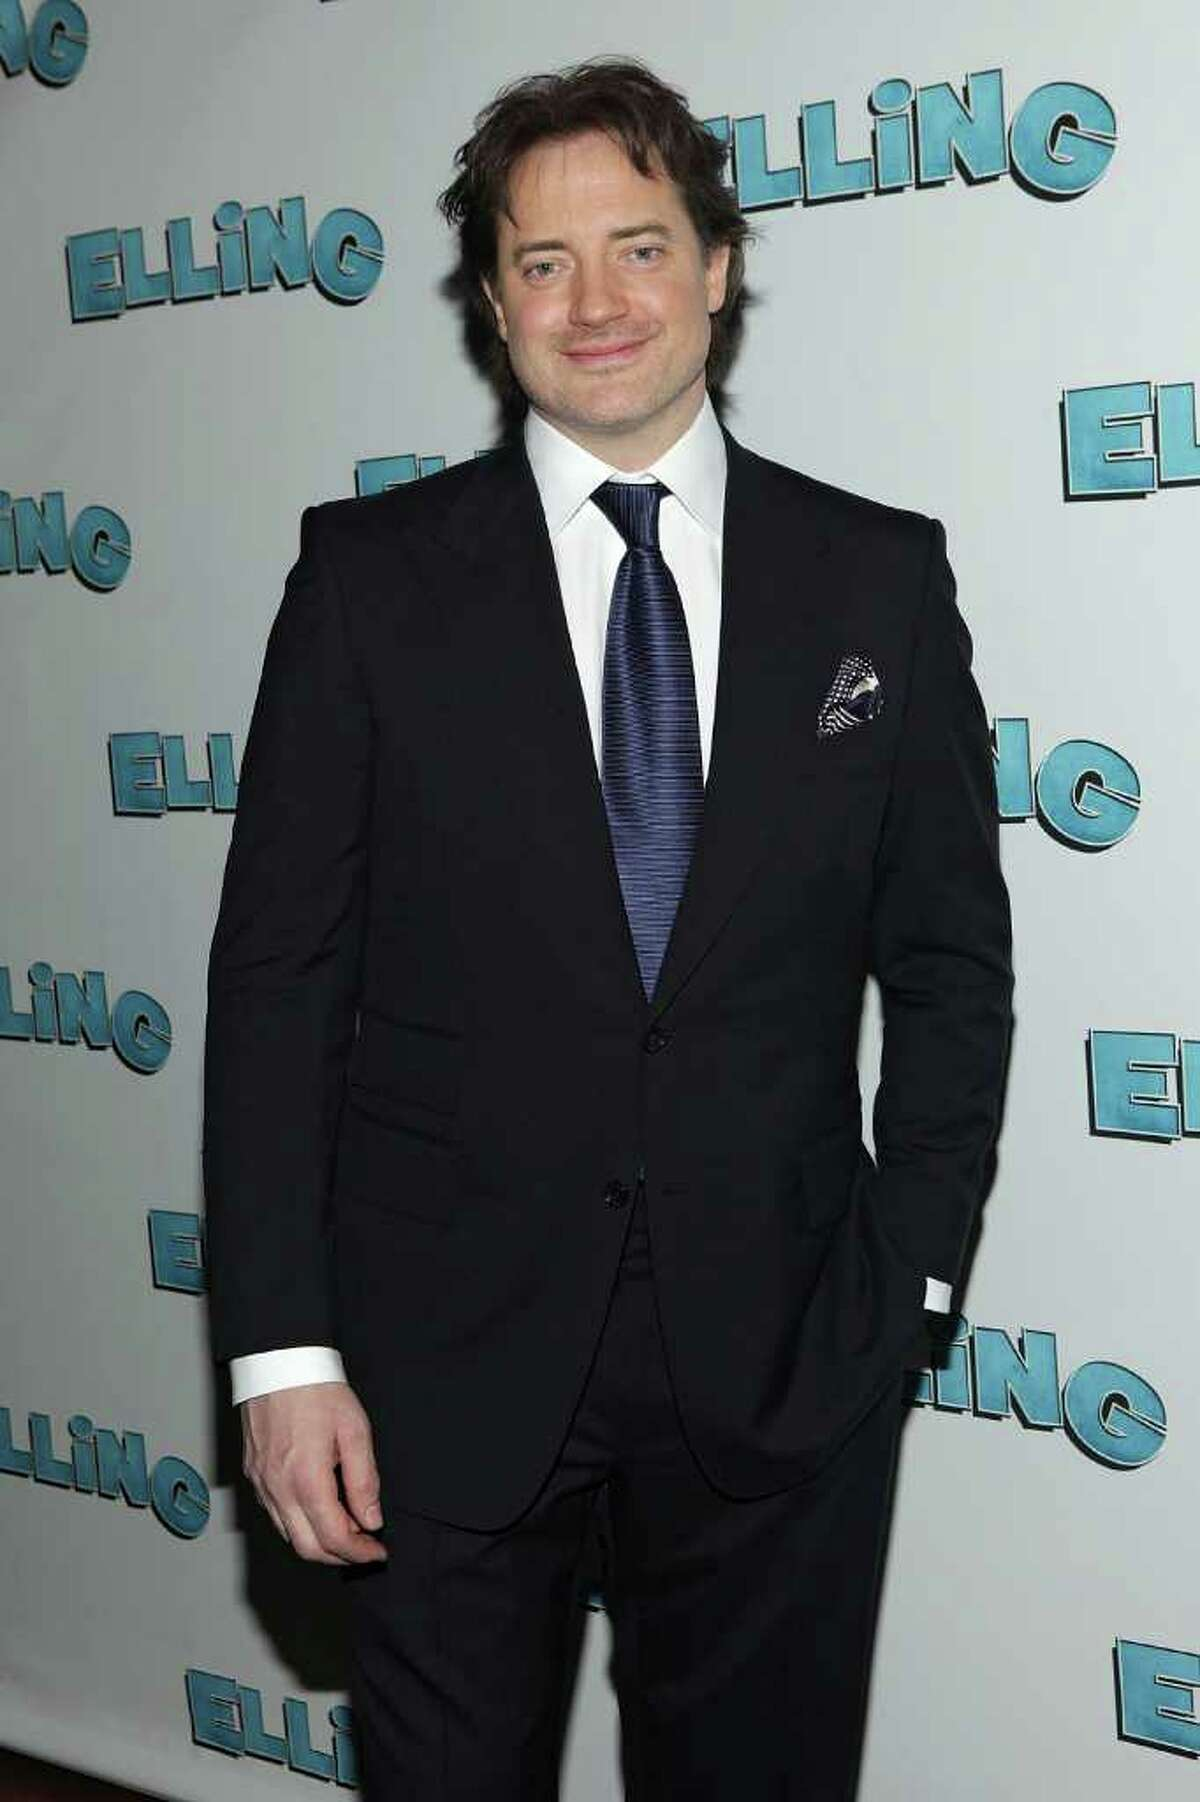 """Brendan Fraser, pictured in November 2010 attending the after party for the Broadway opening night of """"Elling,"""" was spotted Thursday at the Ginger Man on Greenwich Avenue. (Photo by Roger Kisby/Getty Images)"""